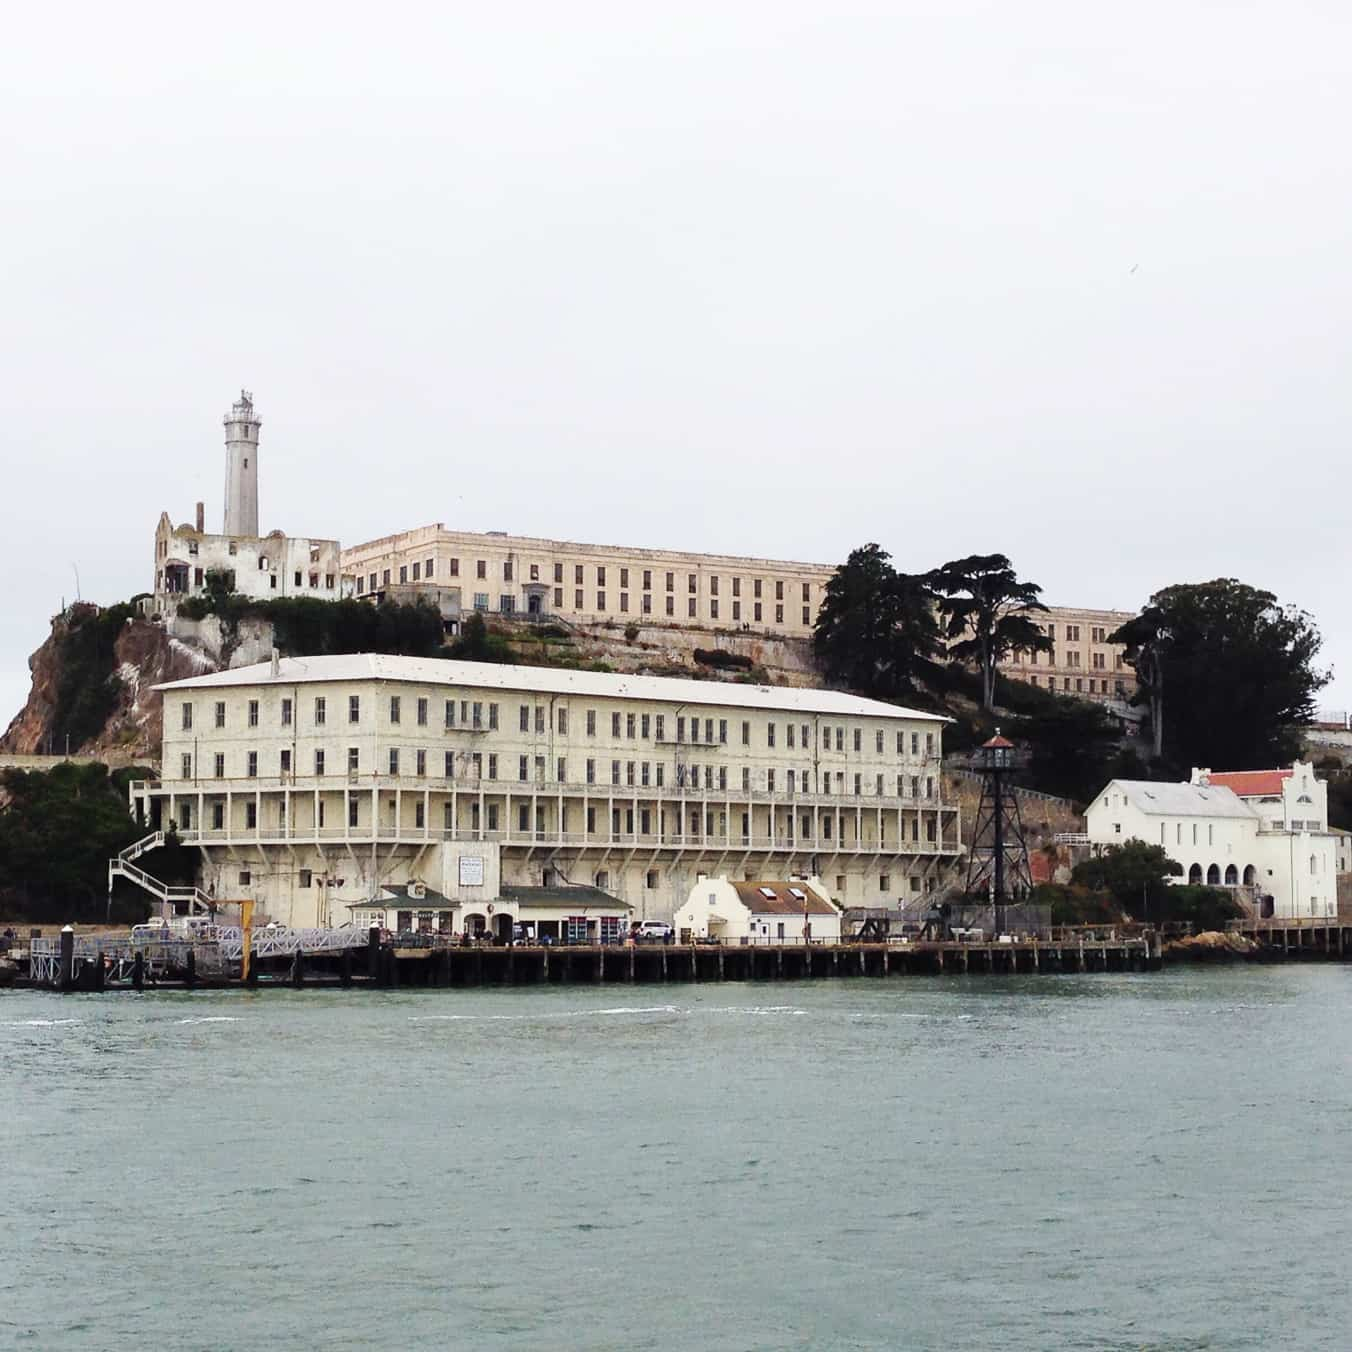 the making of alcatraz Alcatraz america's devil's island, was the quote given to alcatraz because of its similarities to the famous devil's island prison of france in the making of alcatraz, the federal bureau of prisons decided to take the small island in the san francisco bay and make the military fort and jail into a brand new prison.